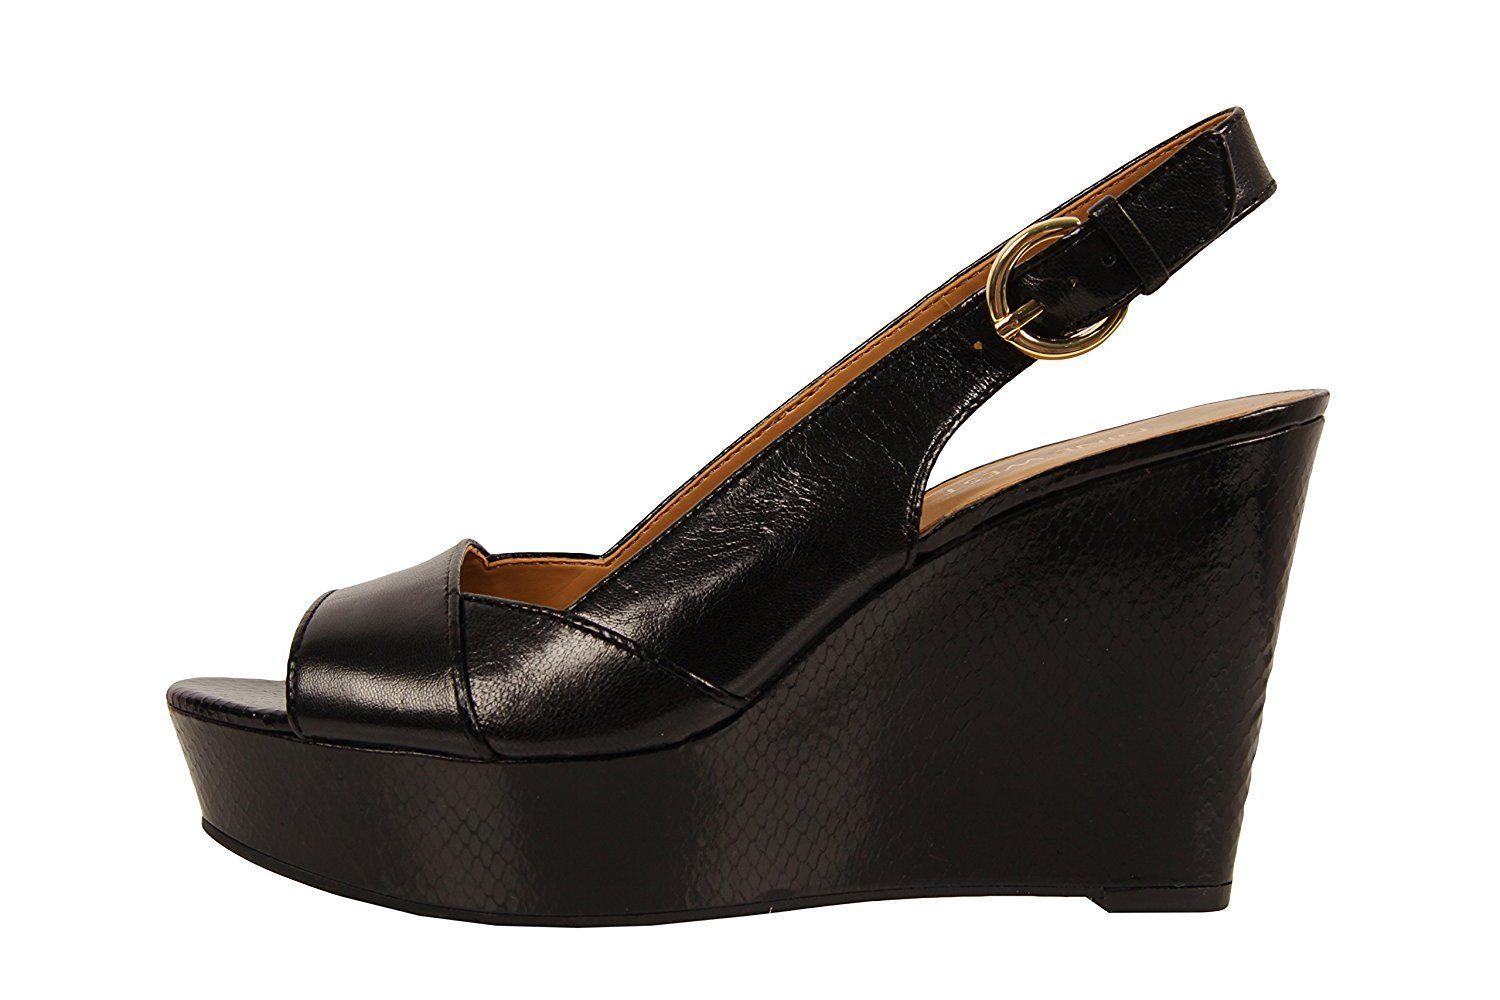 Nine West Women's Caballo Leather Wedge Sandal * You can get additional details at the image link.